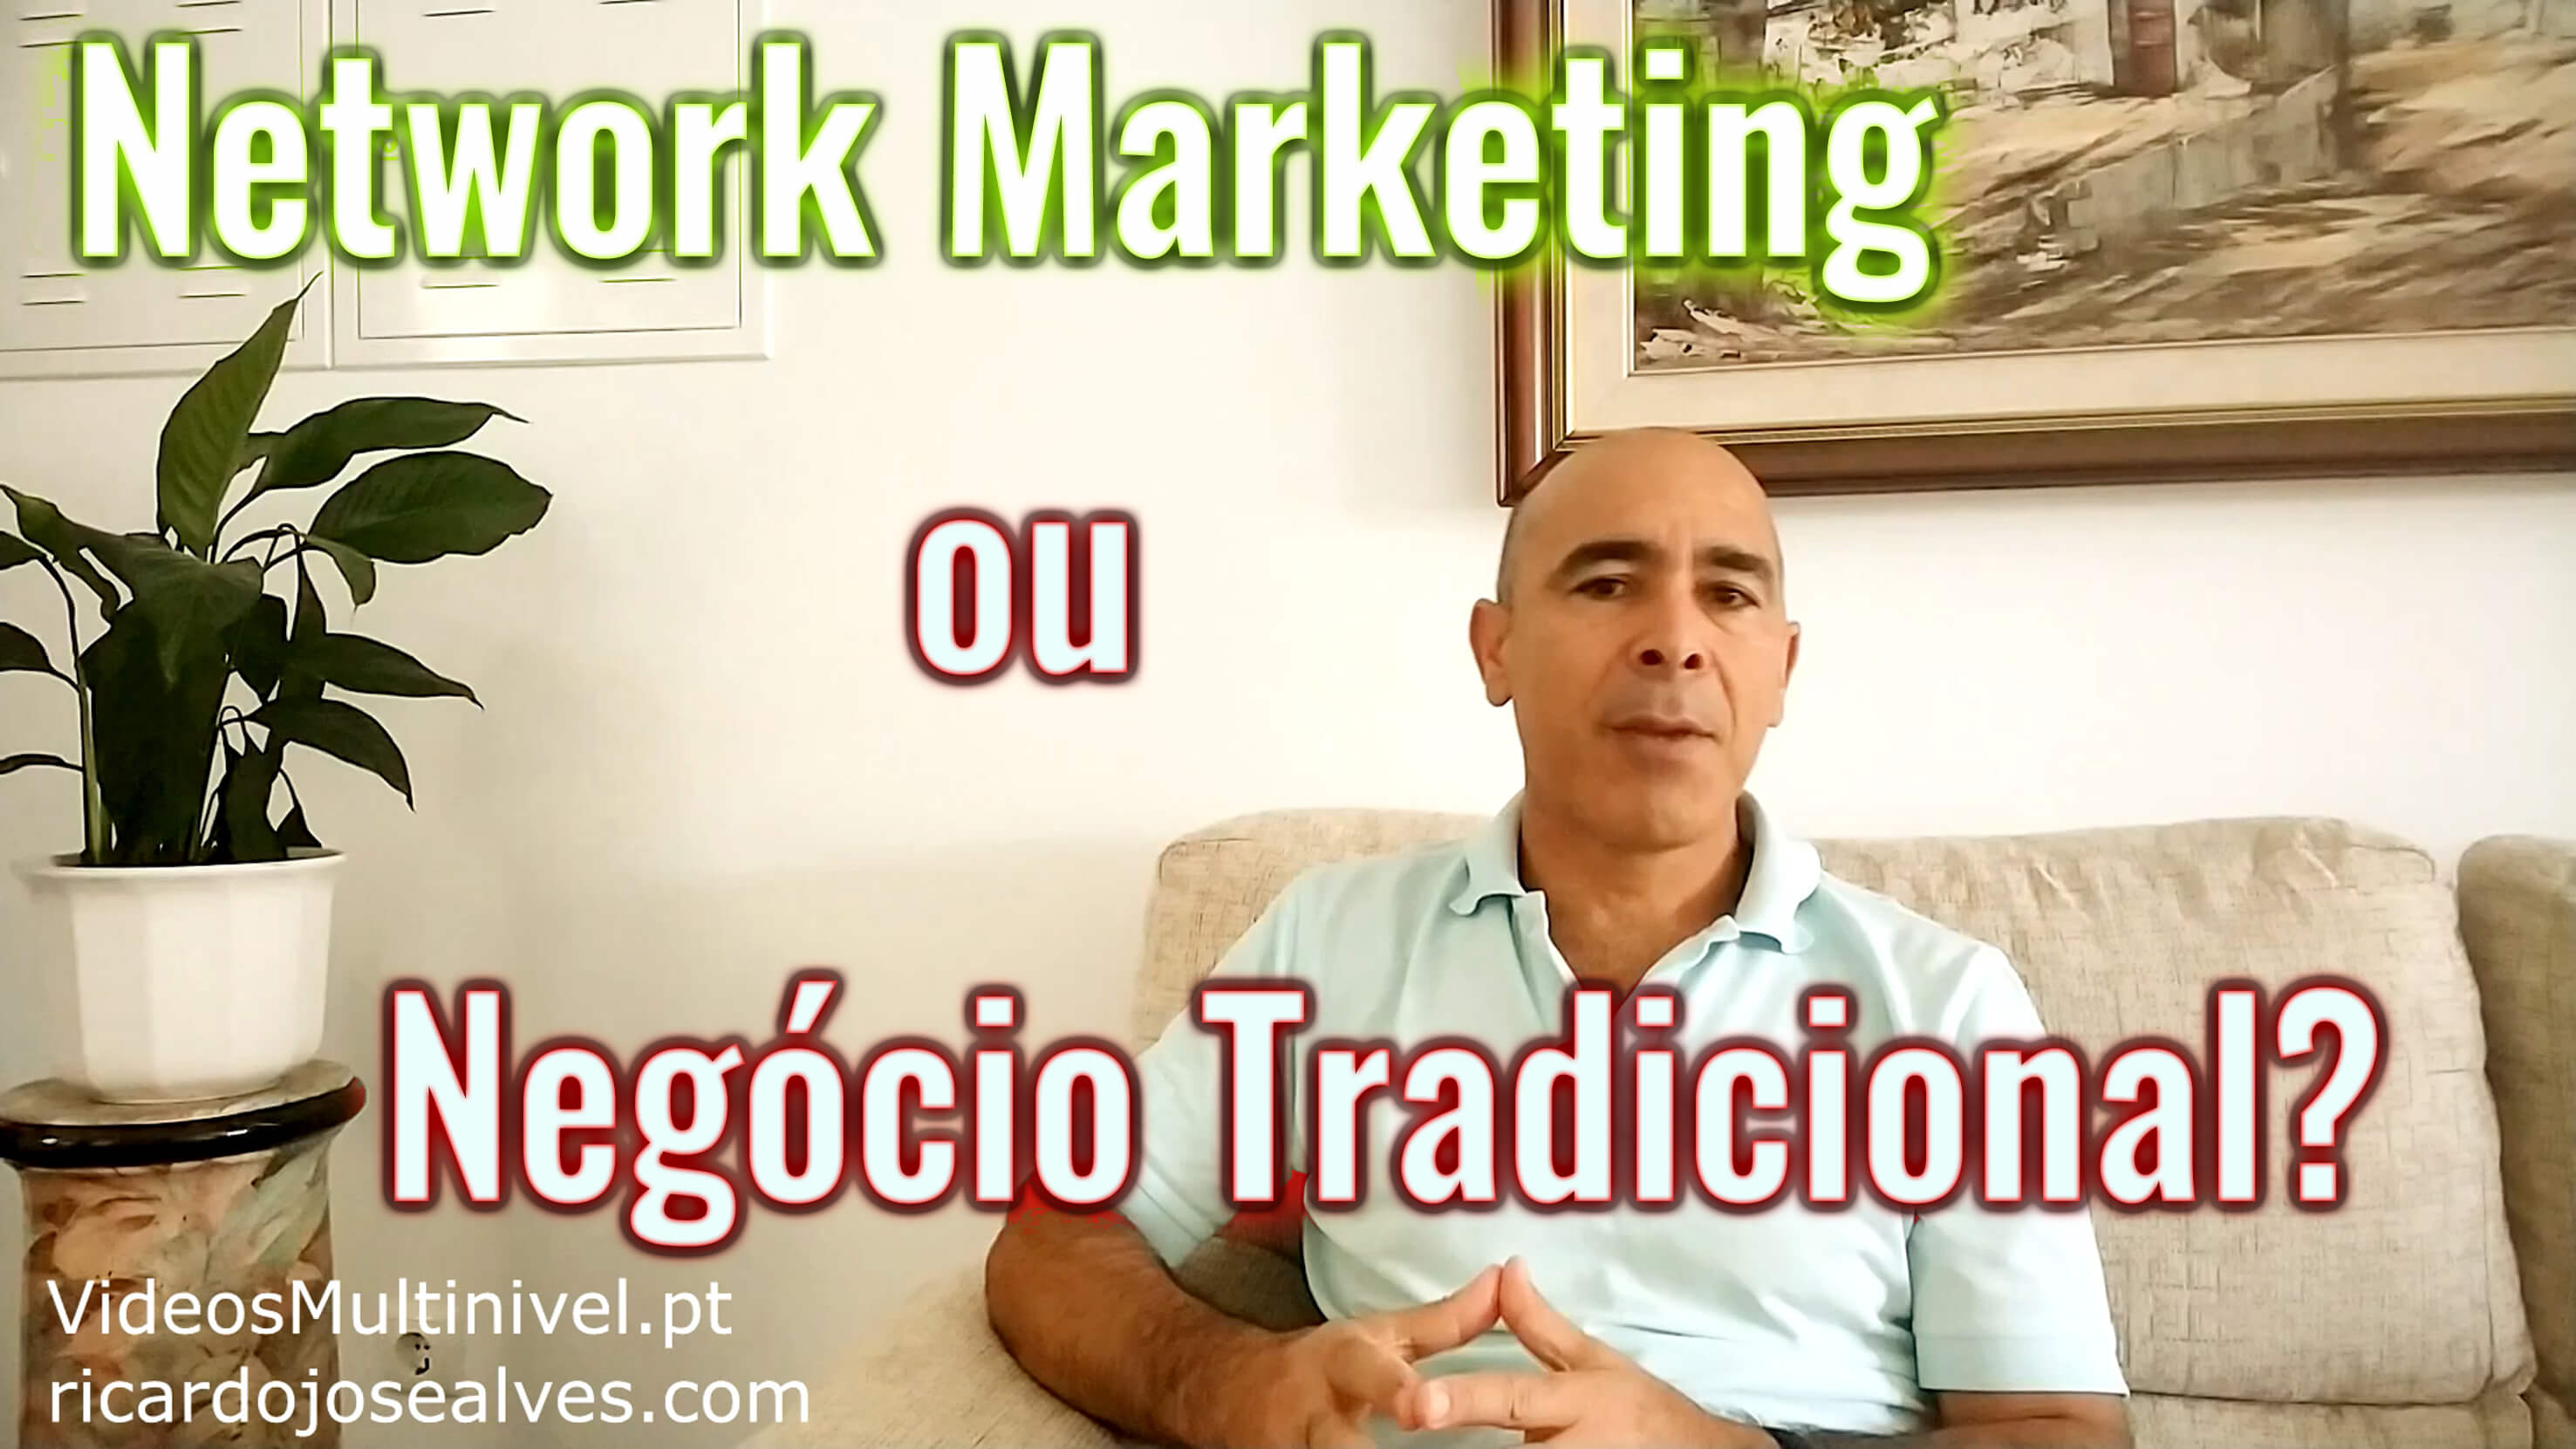 Network Marketing versus Negócio Tradicional